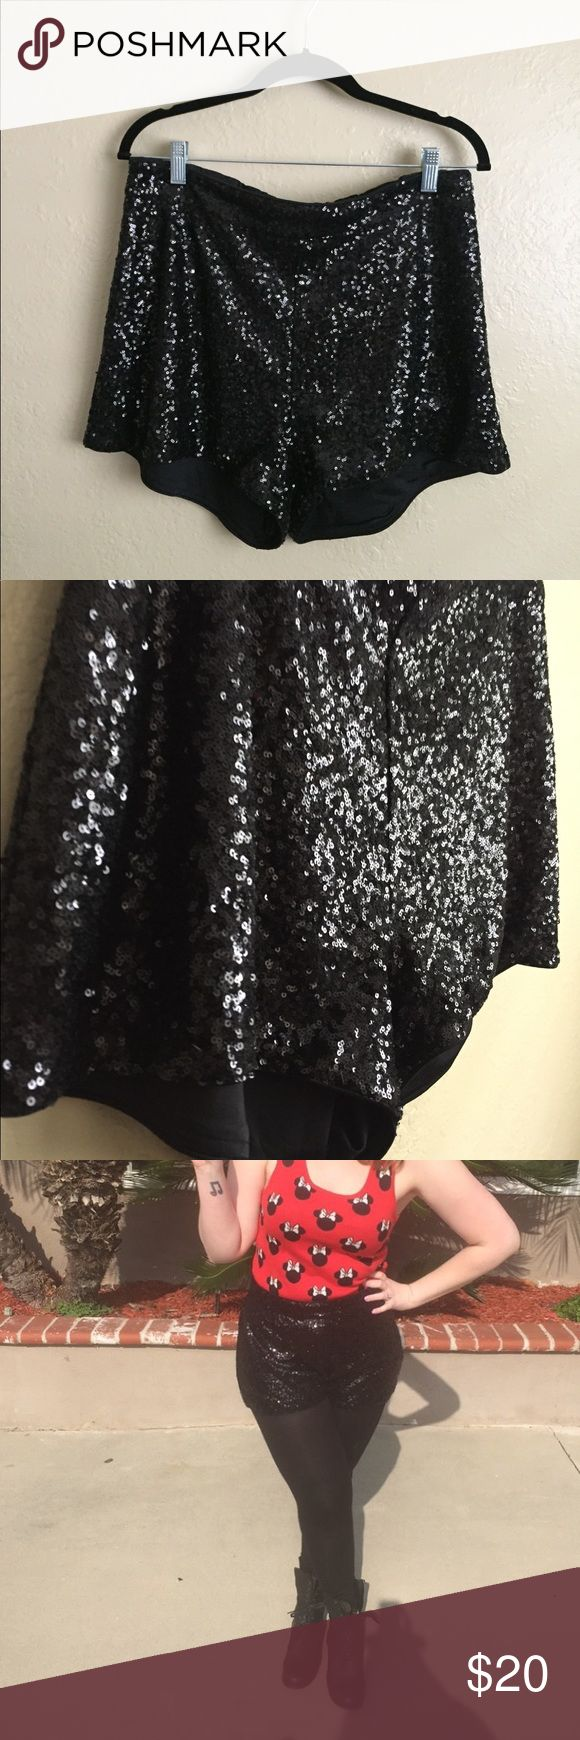 """H&M Black Sequin Shorts ✨ Worn once and in perfect condition. H&M black all over sequin shorts. Lining is soft and comfortable. Size 14, length is 14"""" from waist to hem. True to size with side zipper. True to size. For all other measurements please refer to brand size chart.                                                ✅ Reasonable offers considered. Please do not ask 'lowest' via comments  ✅ Bundle Discount  🚫 Cannot model item  🚫 No trades  🚫 Low ball offers will be declined H&M…"""